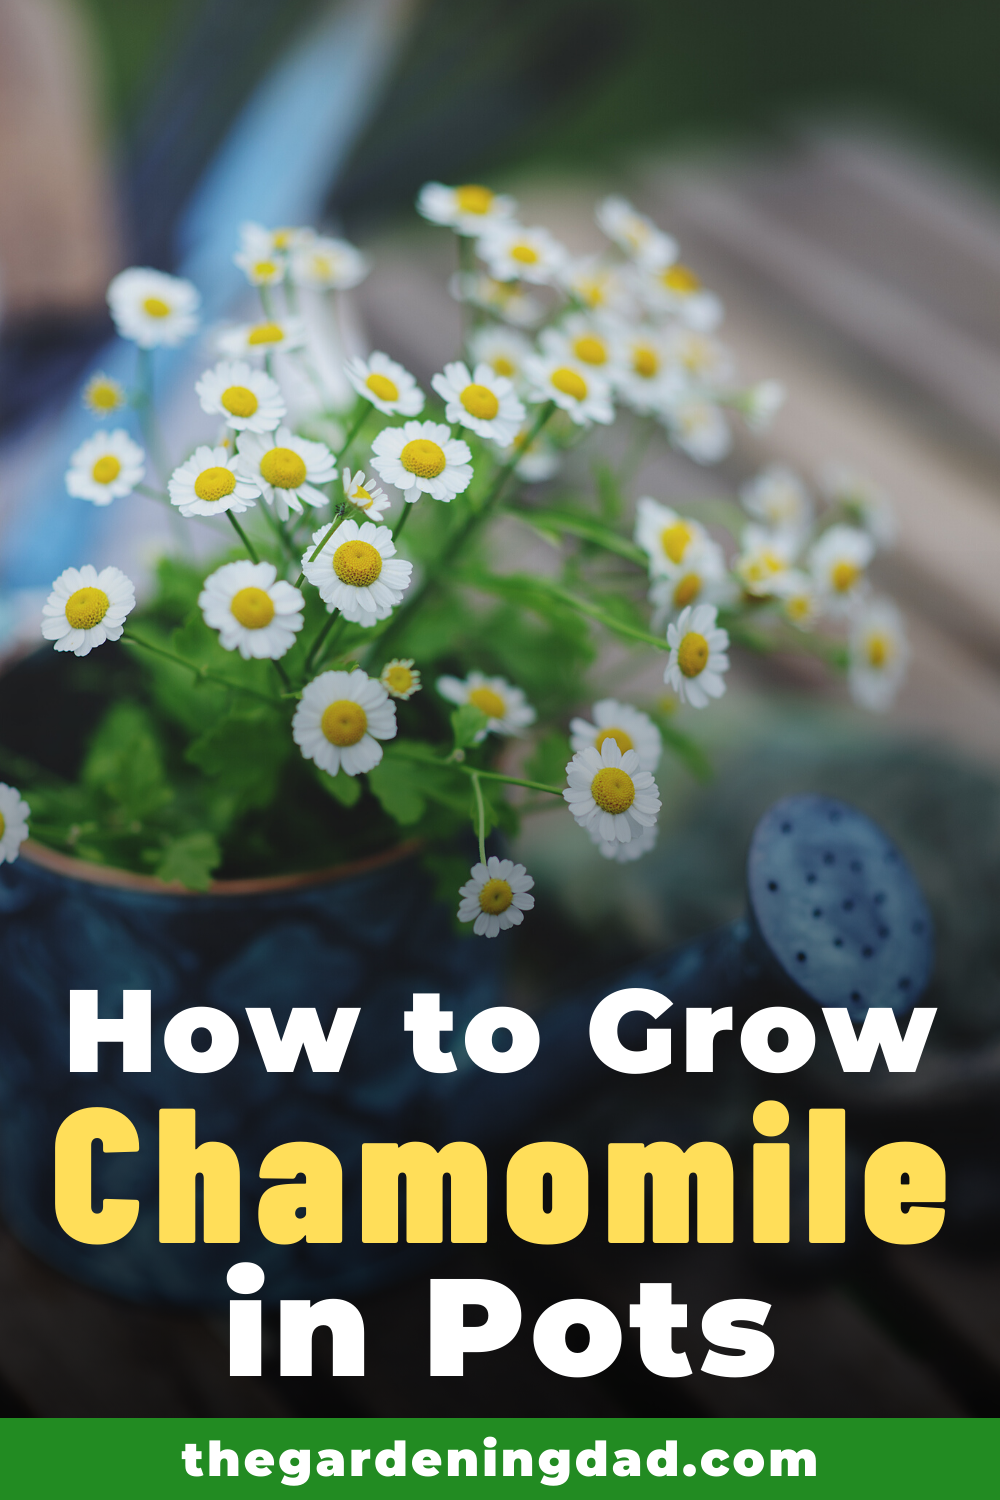 10 Easy Tips How To Grow Chamomile The Gardening Dad Chamomile Growing Chamomile Plant Chamomile Seeds